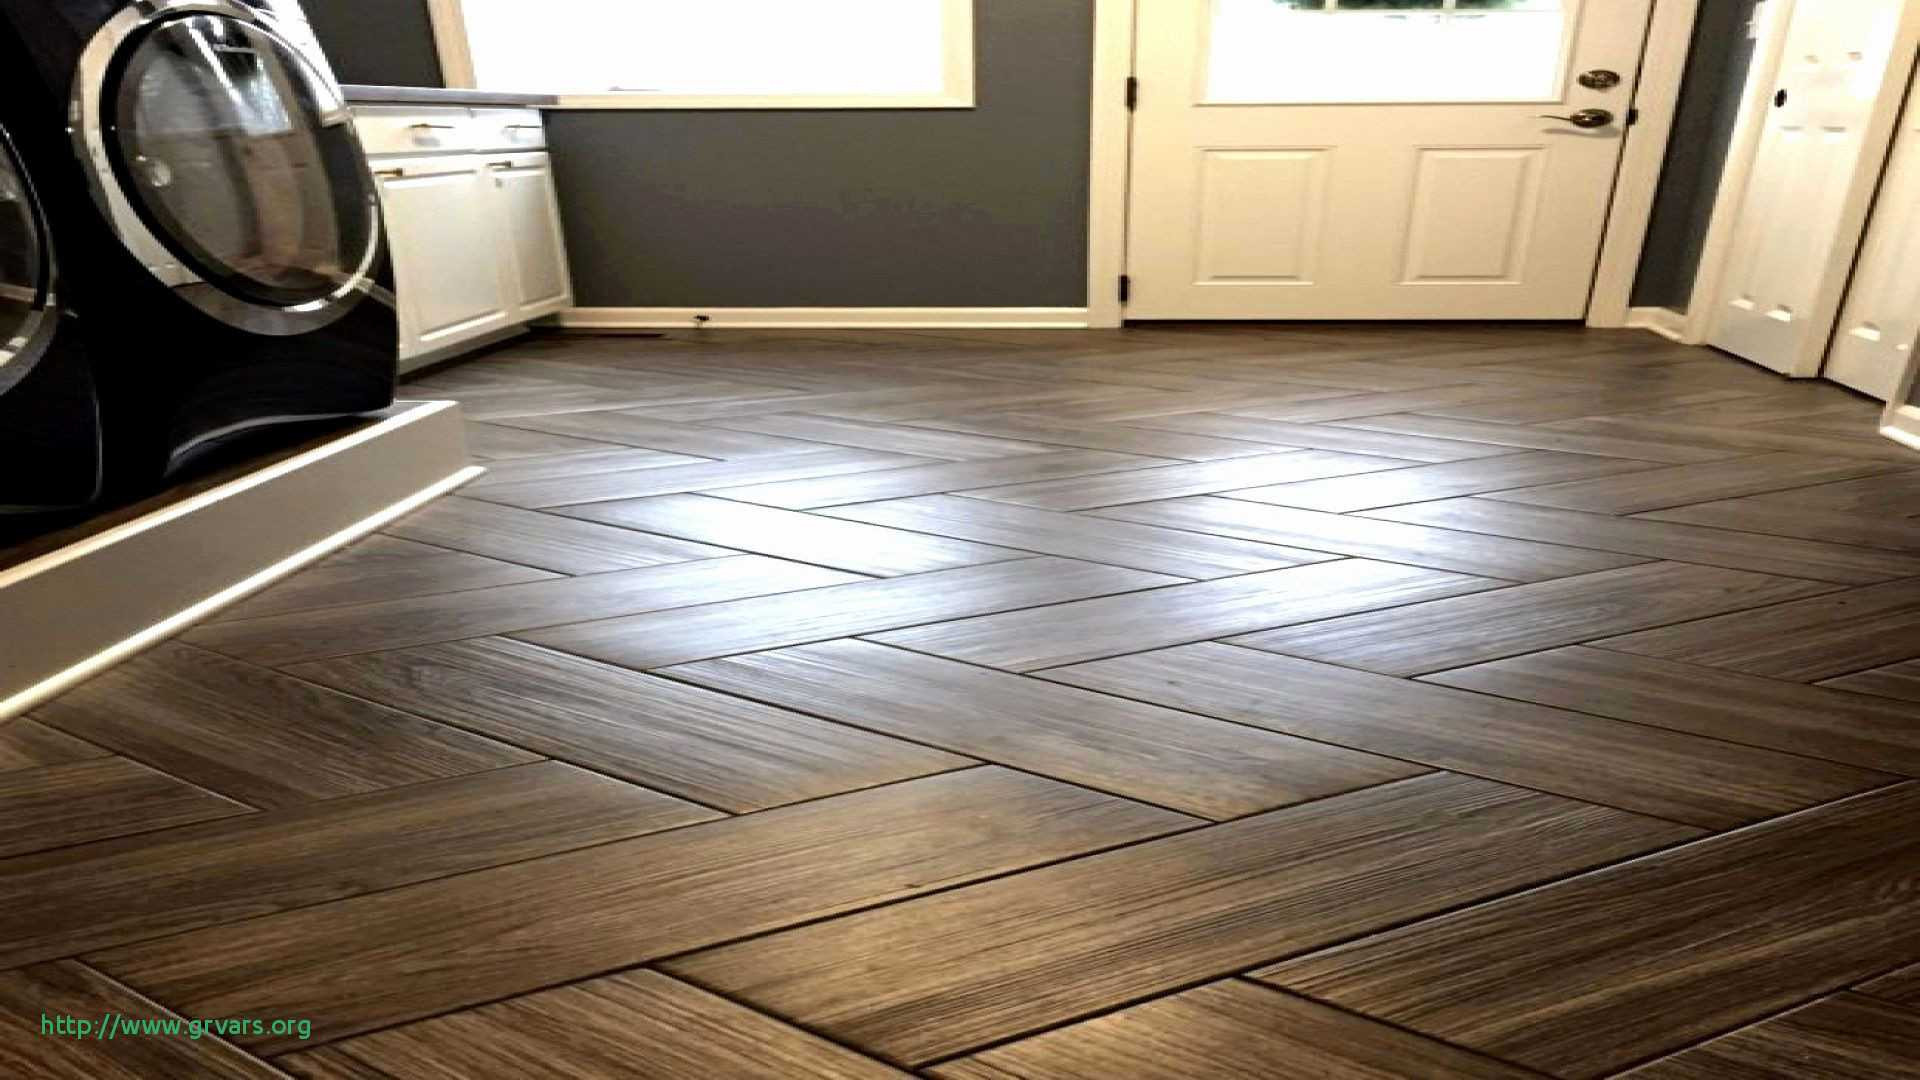 vinegar and hardwood floors of 24 inspirant how much are wood floors ideas blog inside how much are wood floors luxe laminated wooden flooring prices guide to solid hardwood floors